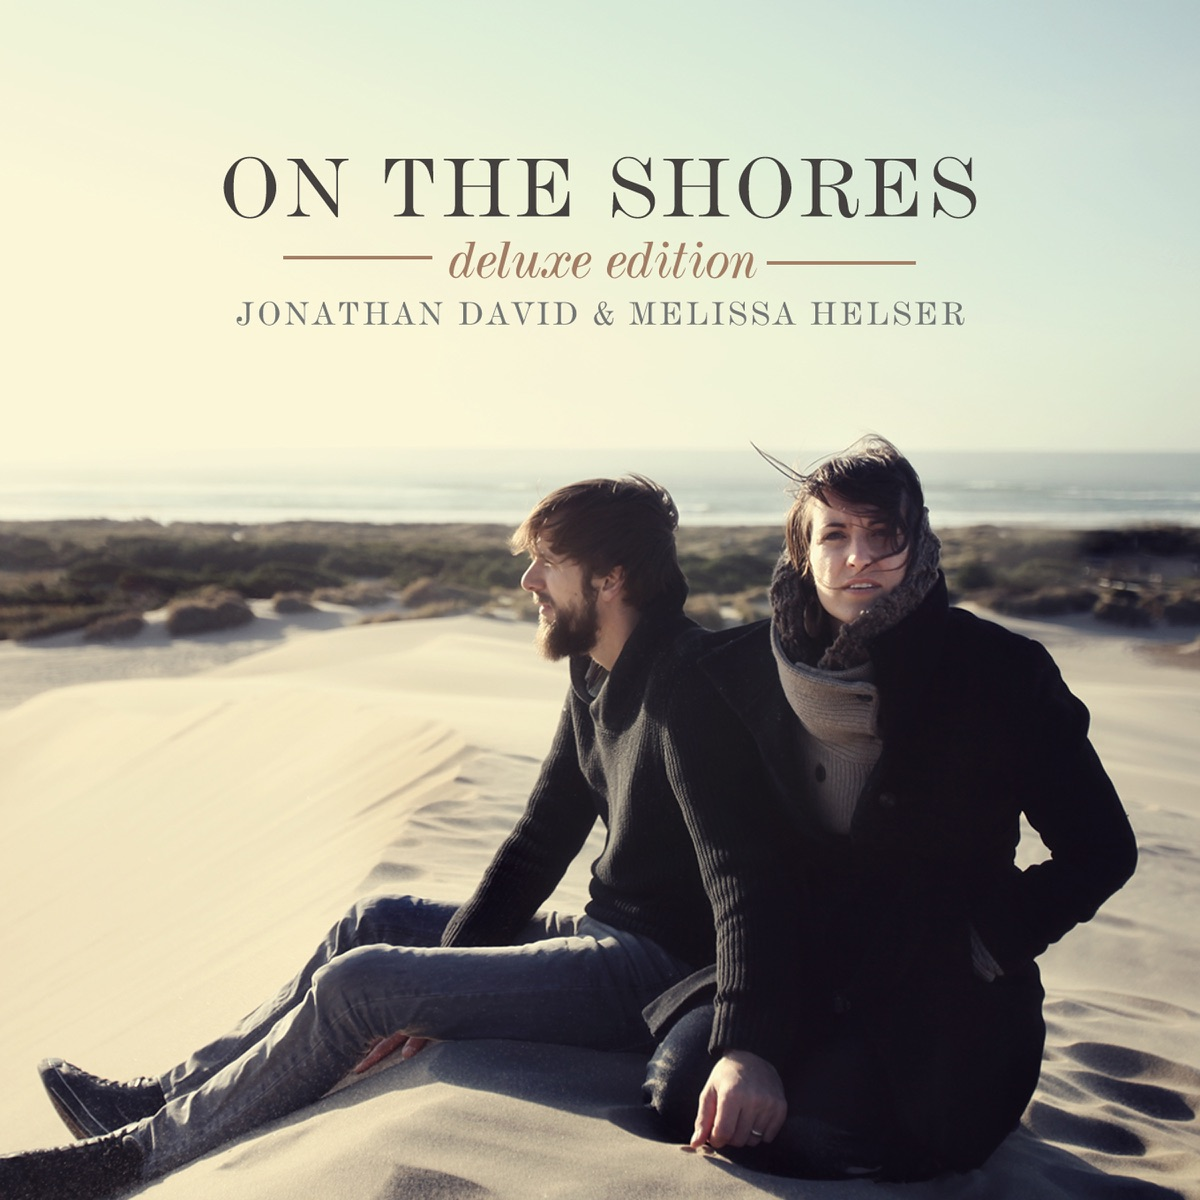 On the Shores Deluxe Edition Jonathan David  Melissa Helser CD cover